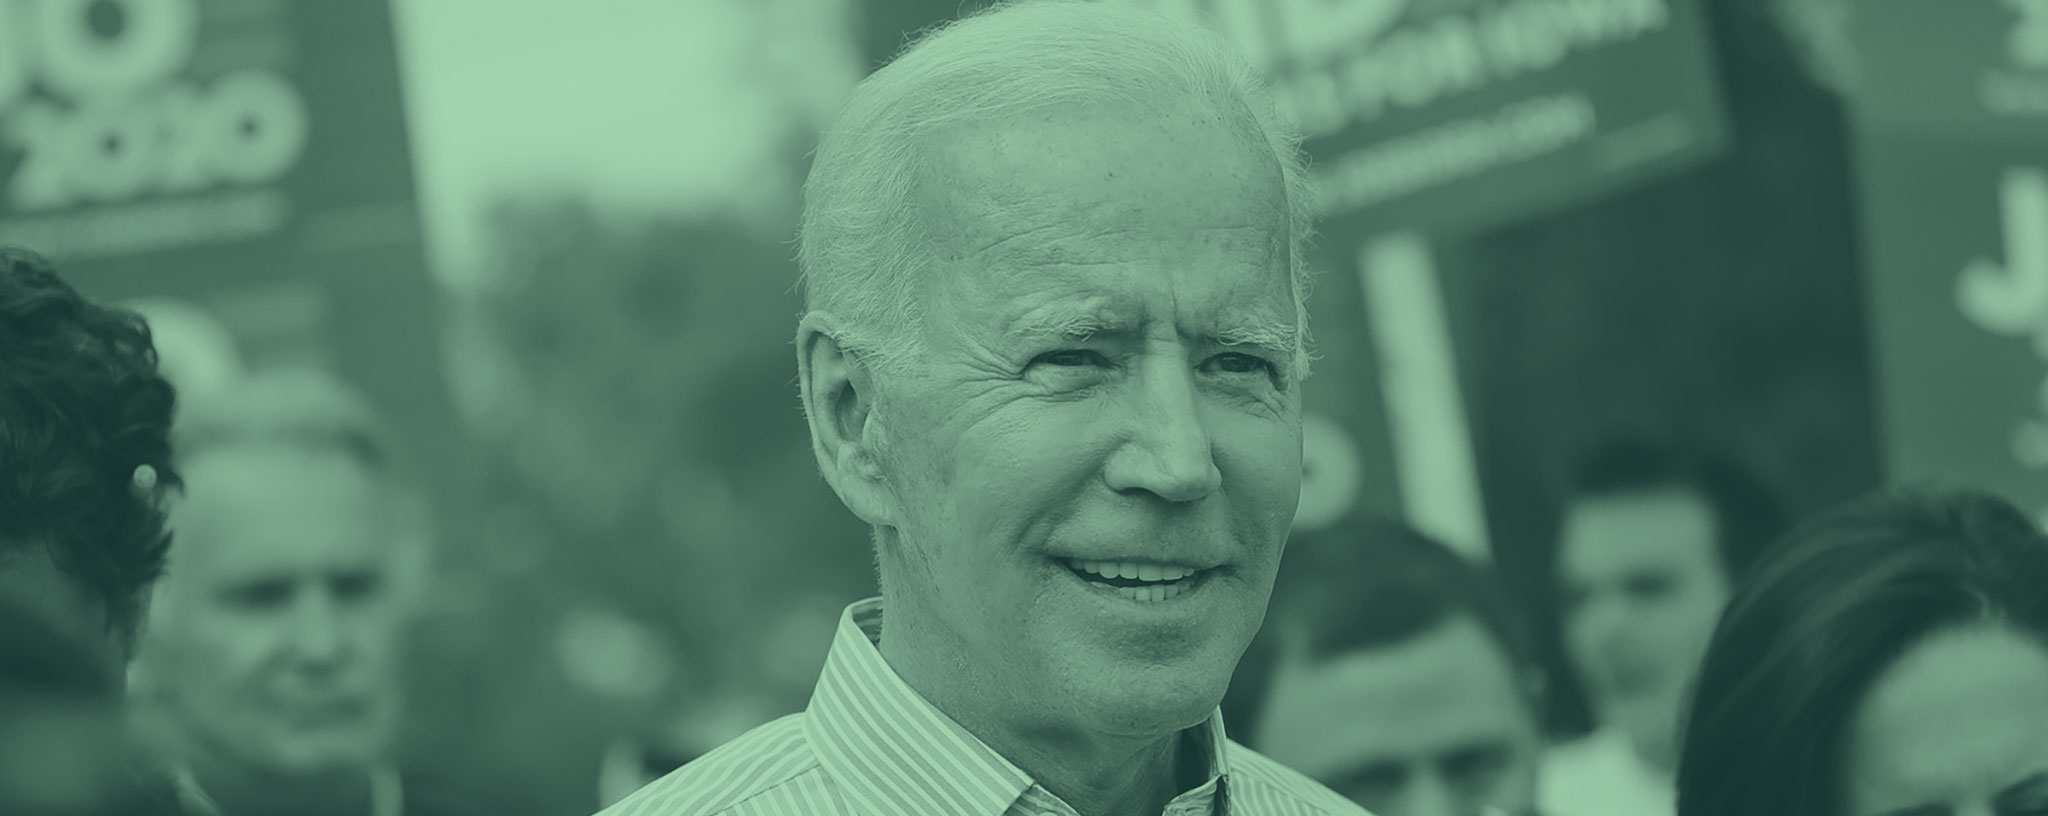 Our investigation into whether Joe Biden's election provides a special time for outsized impact in climate philanthropy.